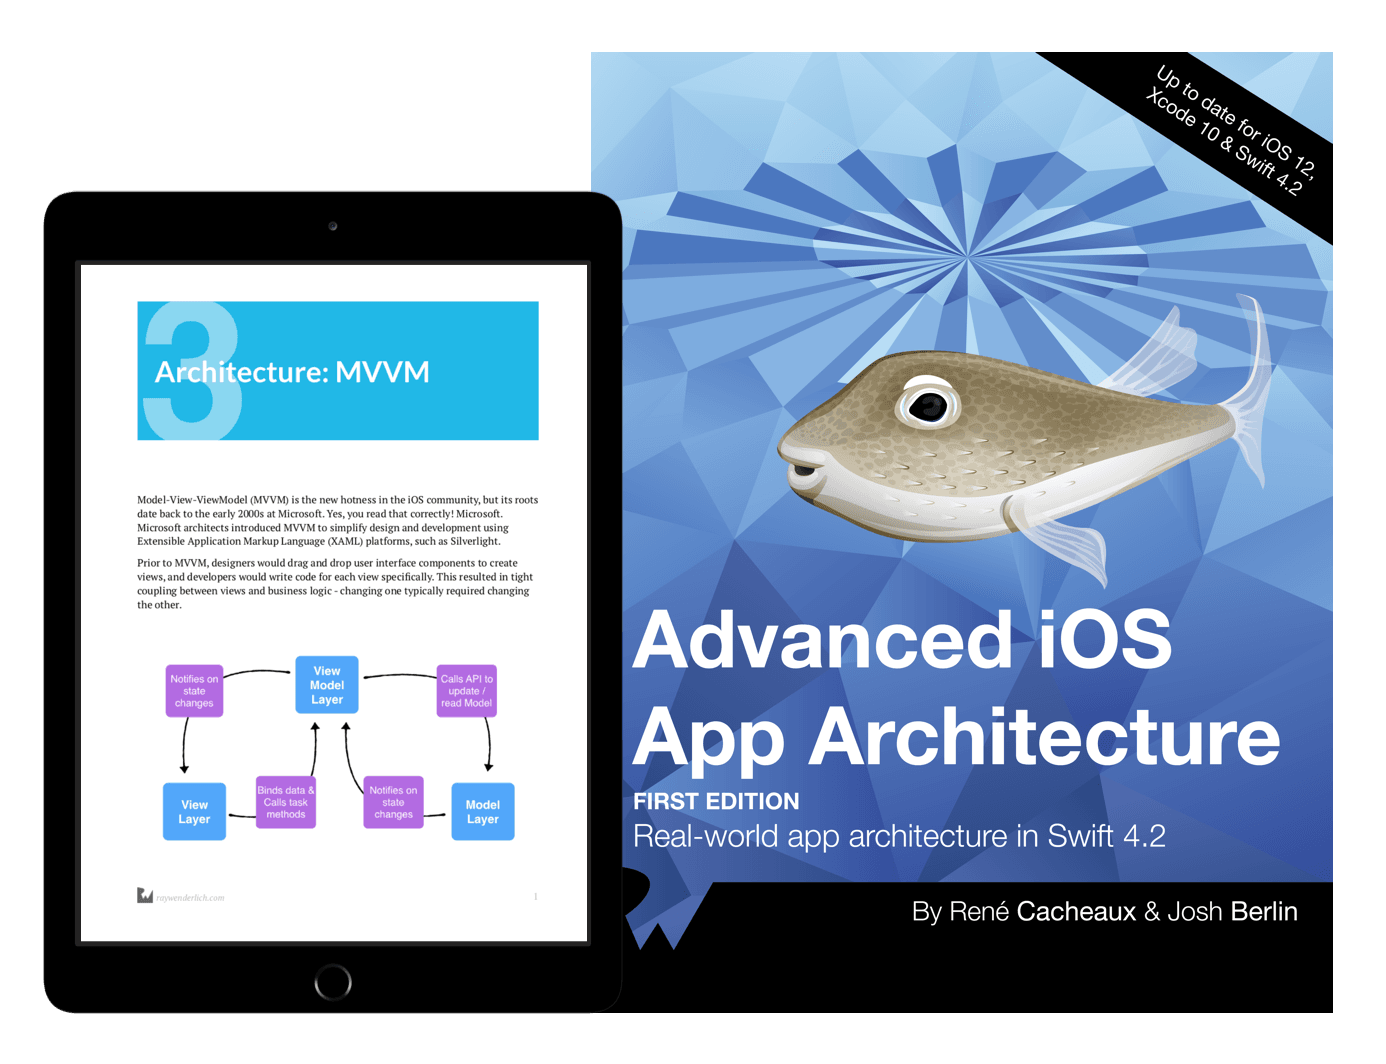 Advanced iOS App Architecture cover